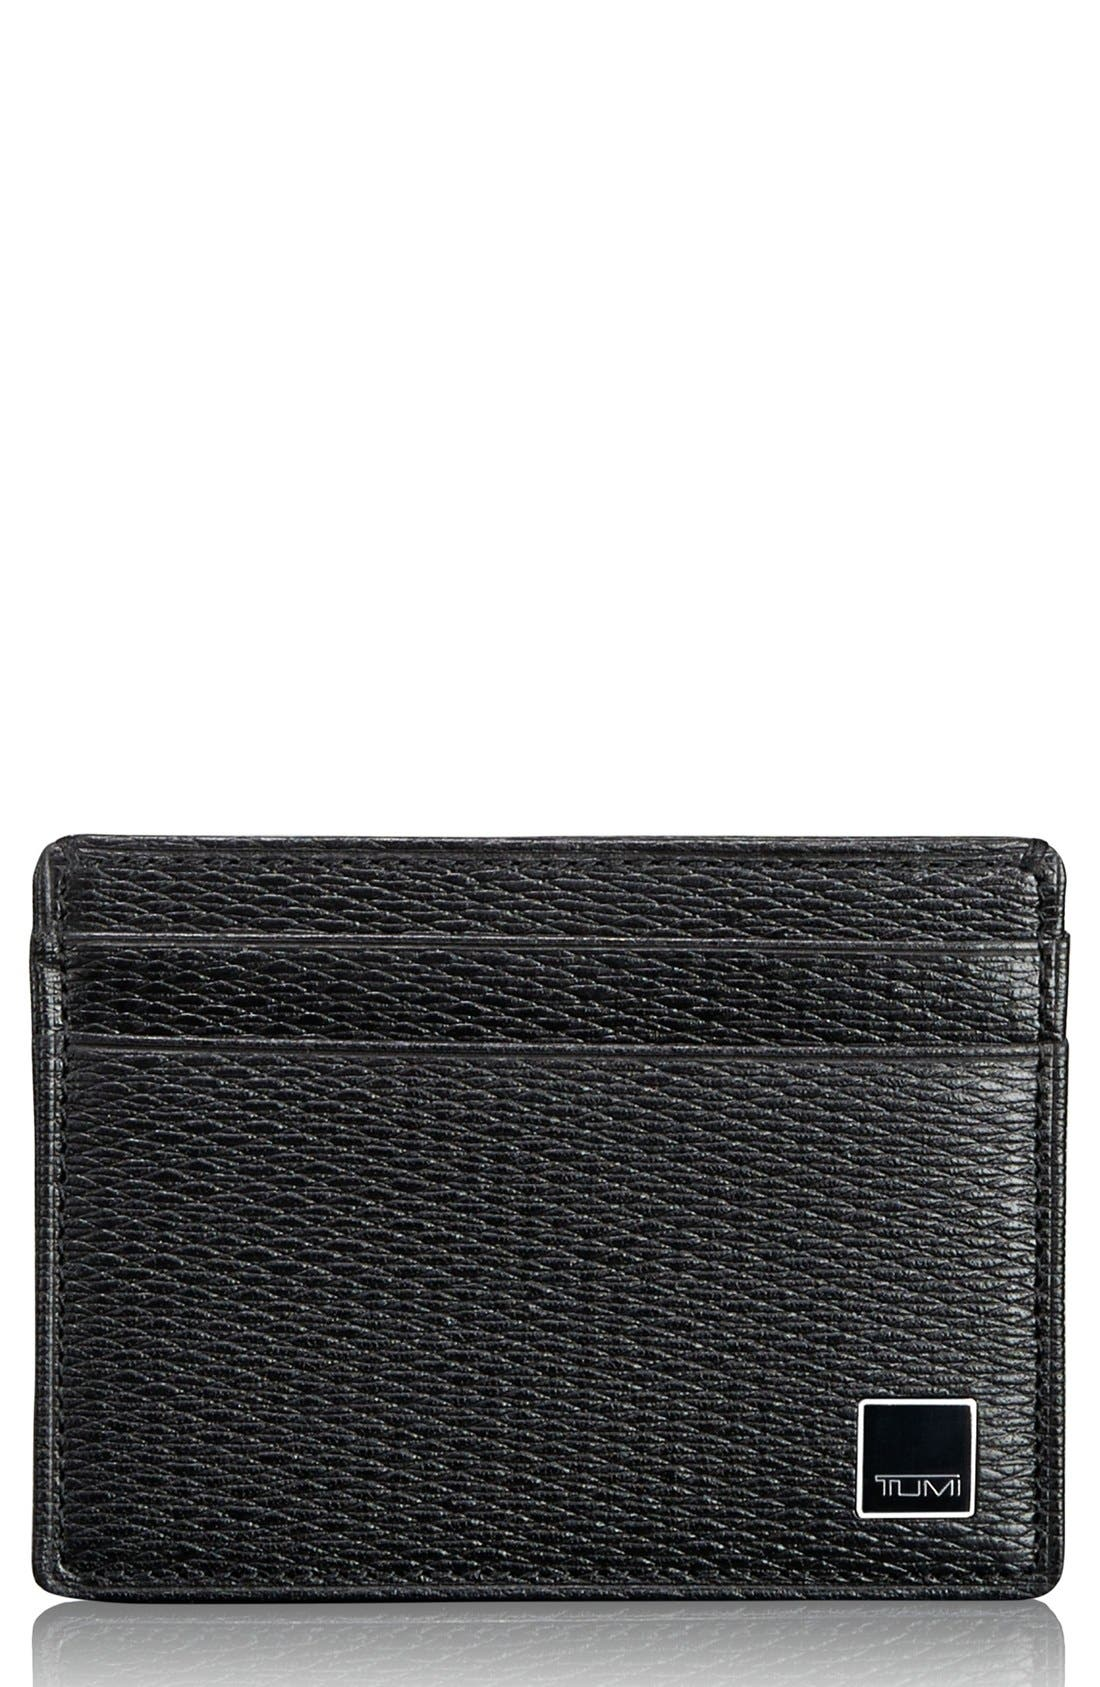 Alternate Image 1 Selected - Tumi 'Monaco' Slim Card Case